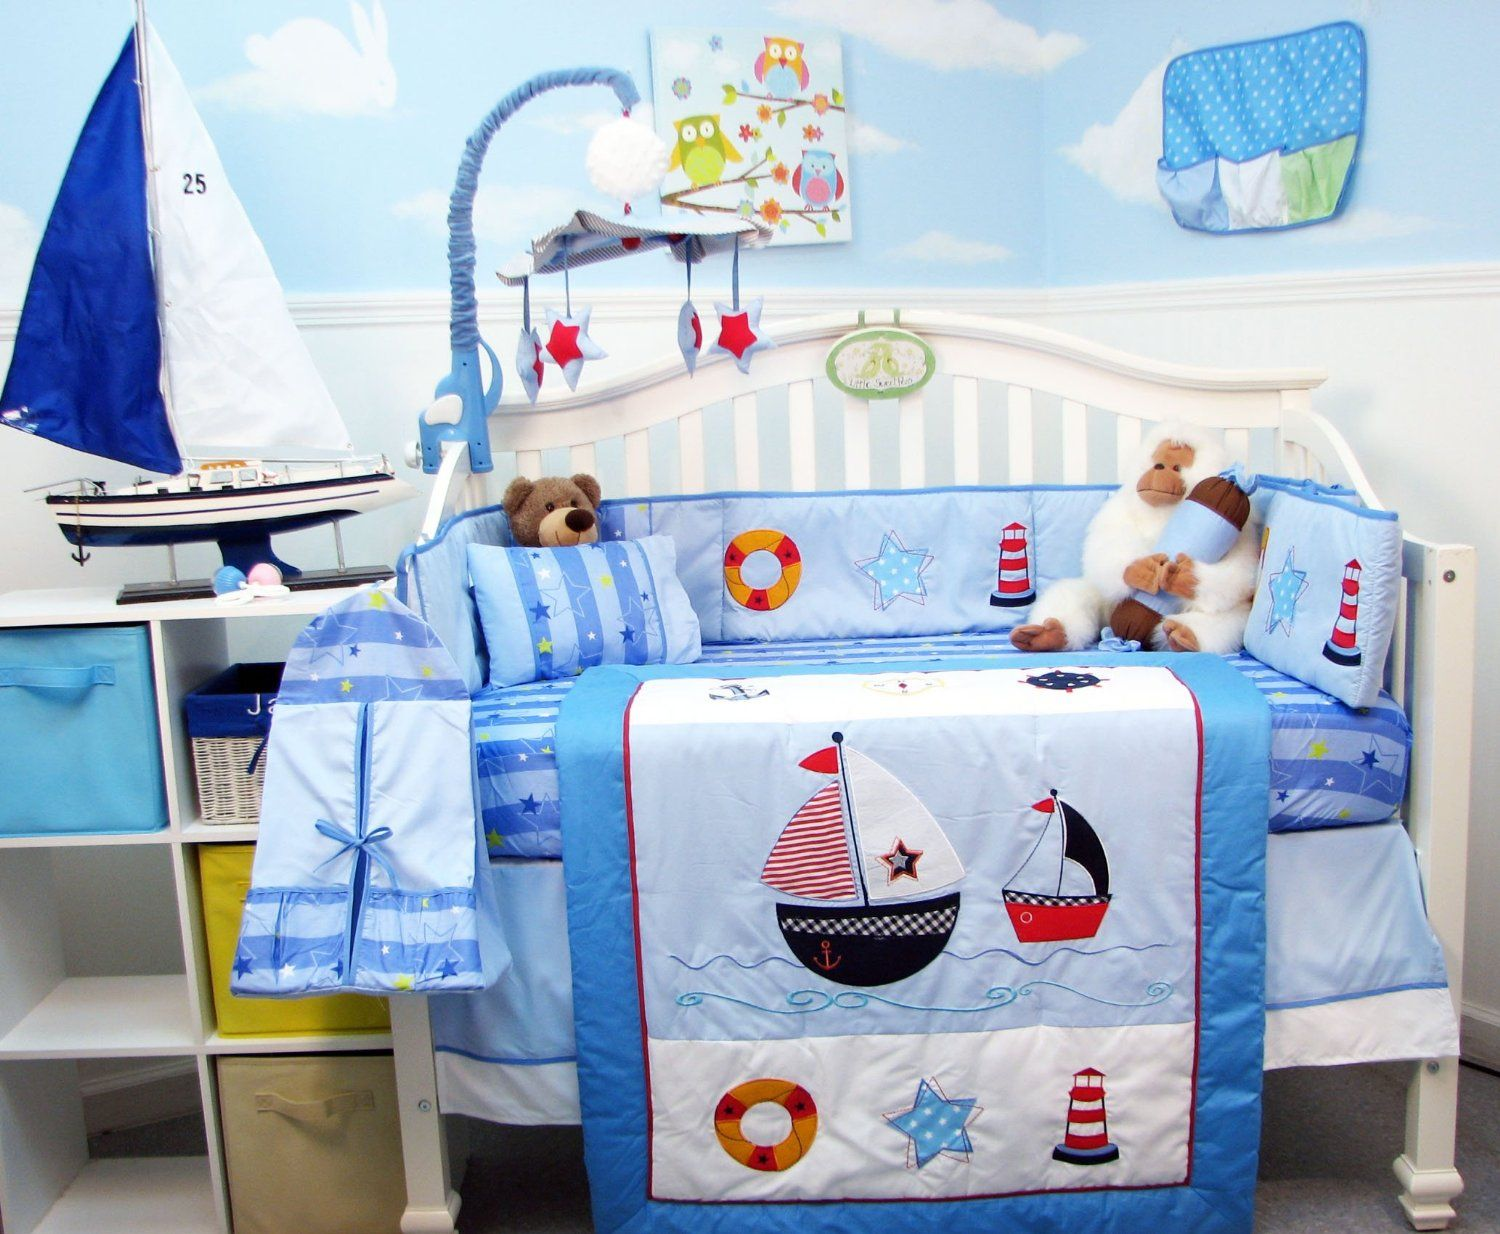 Soho Ship Ahoy Crib Bedding Collection | Cunas de bebé, Para bebés y ...